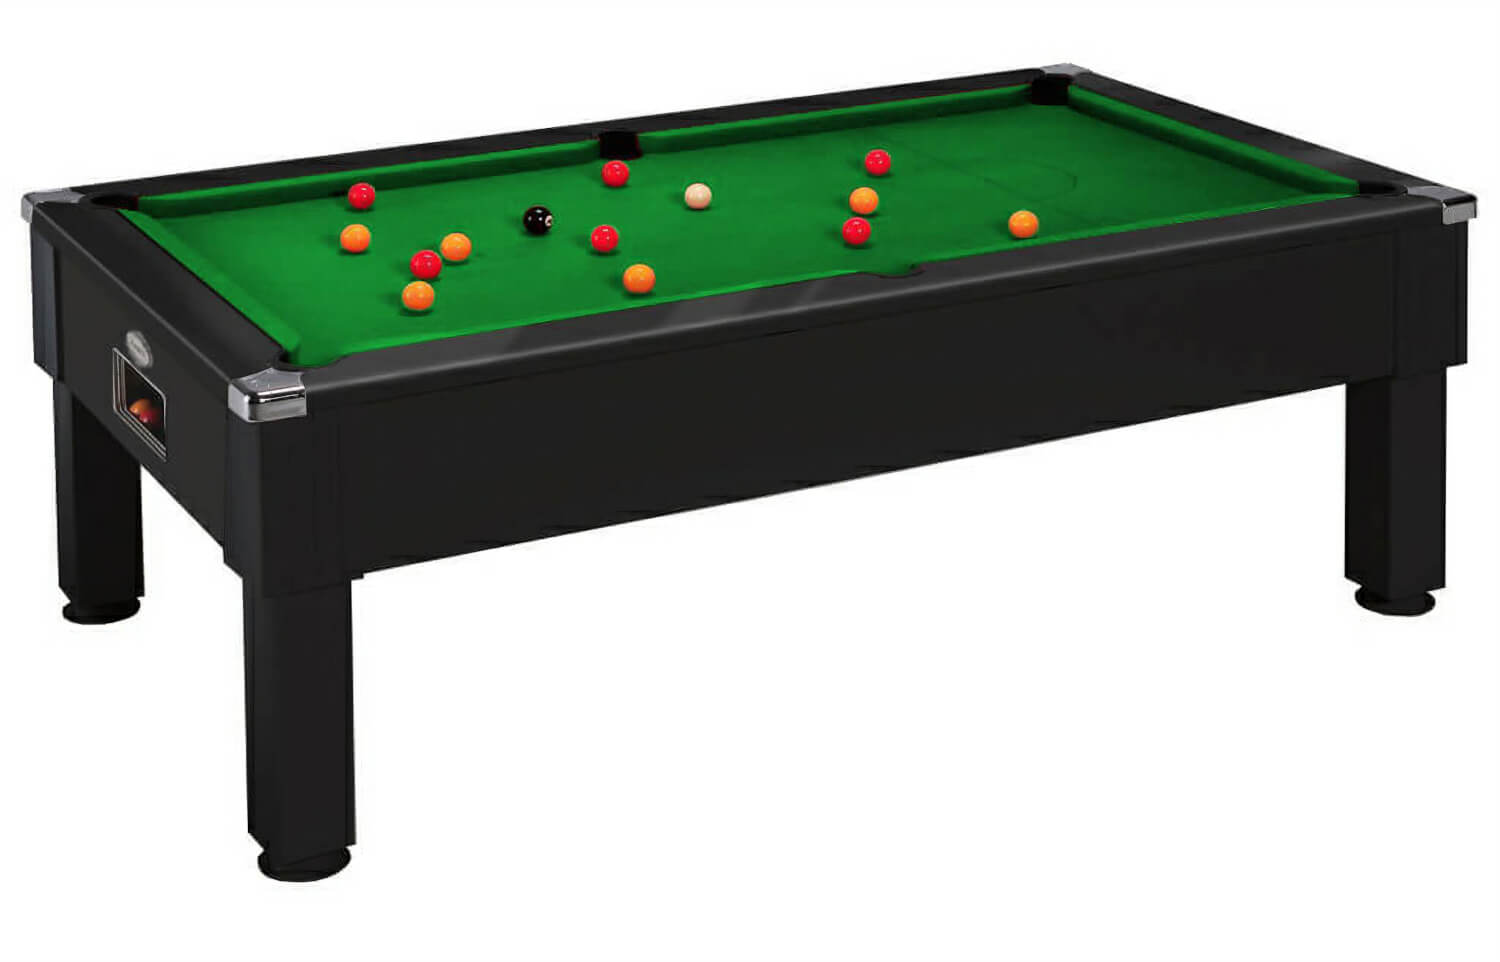 Emirates pool table 6 ft 7 ft 8 ft liberty games for Table 6 of gstr 1